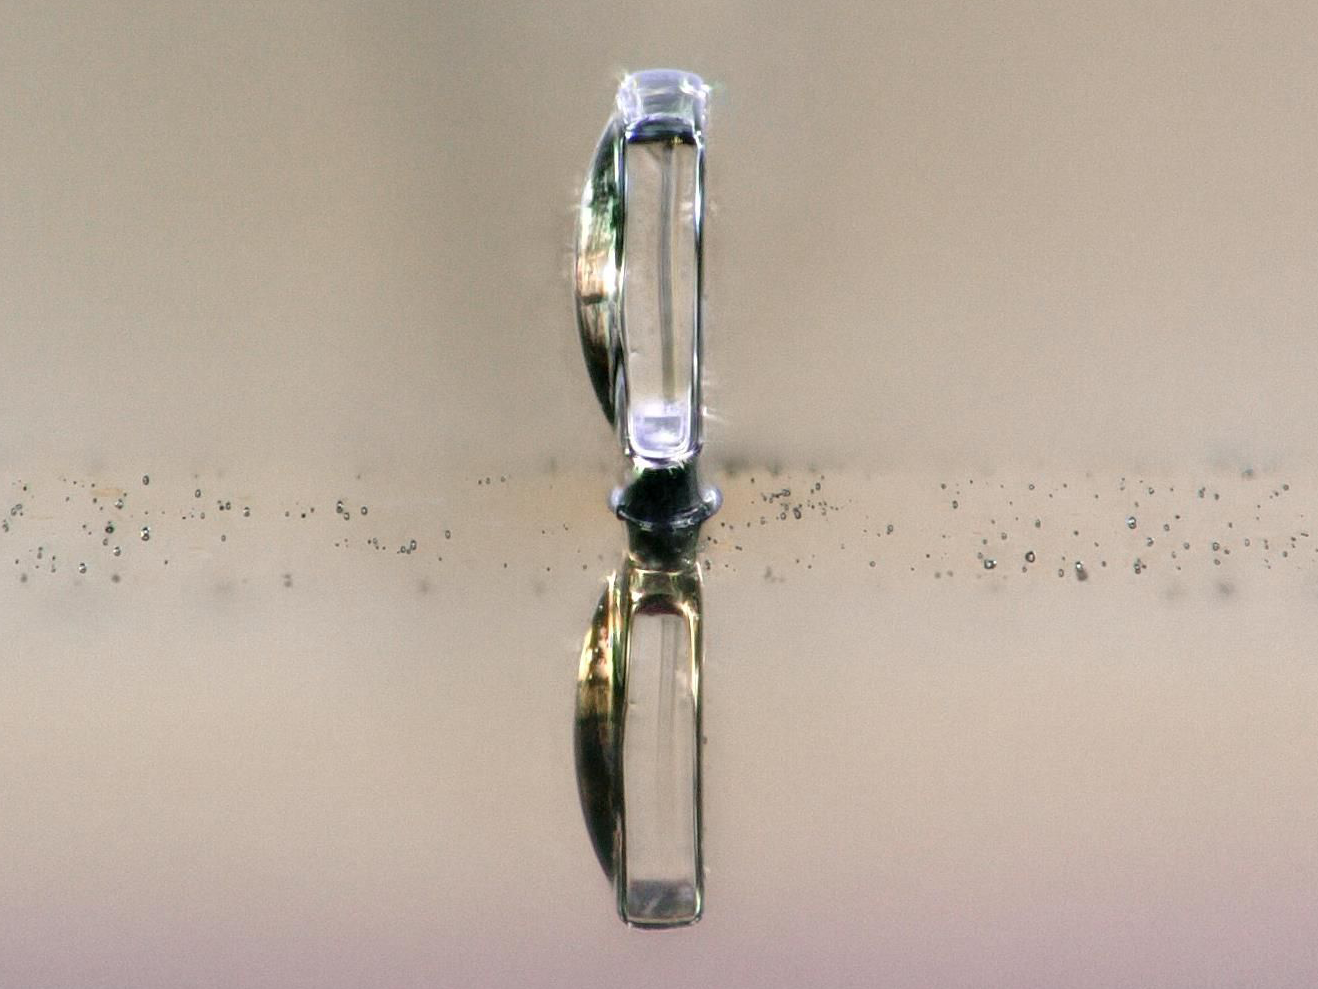 Scientists from Freiburg-Nanoscribe use a 2PP 3D printer to create ultra-precise glass optics